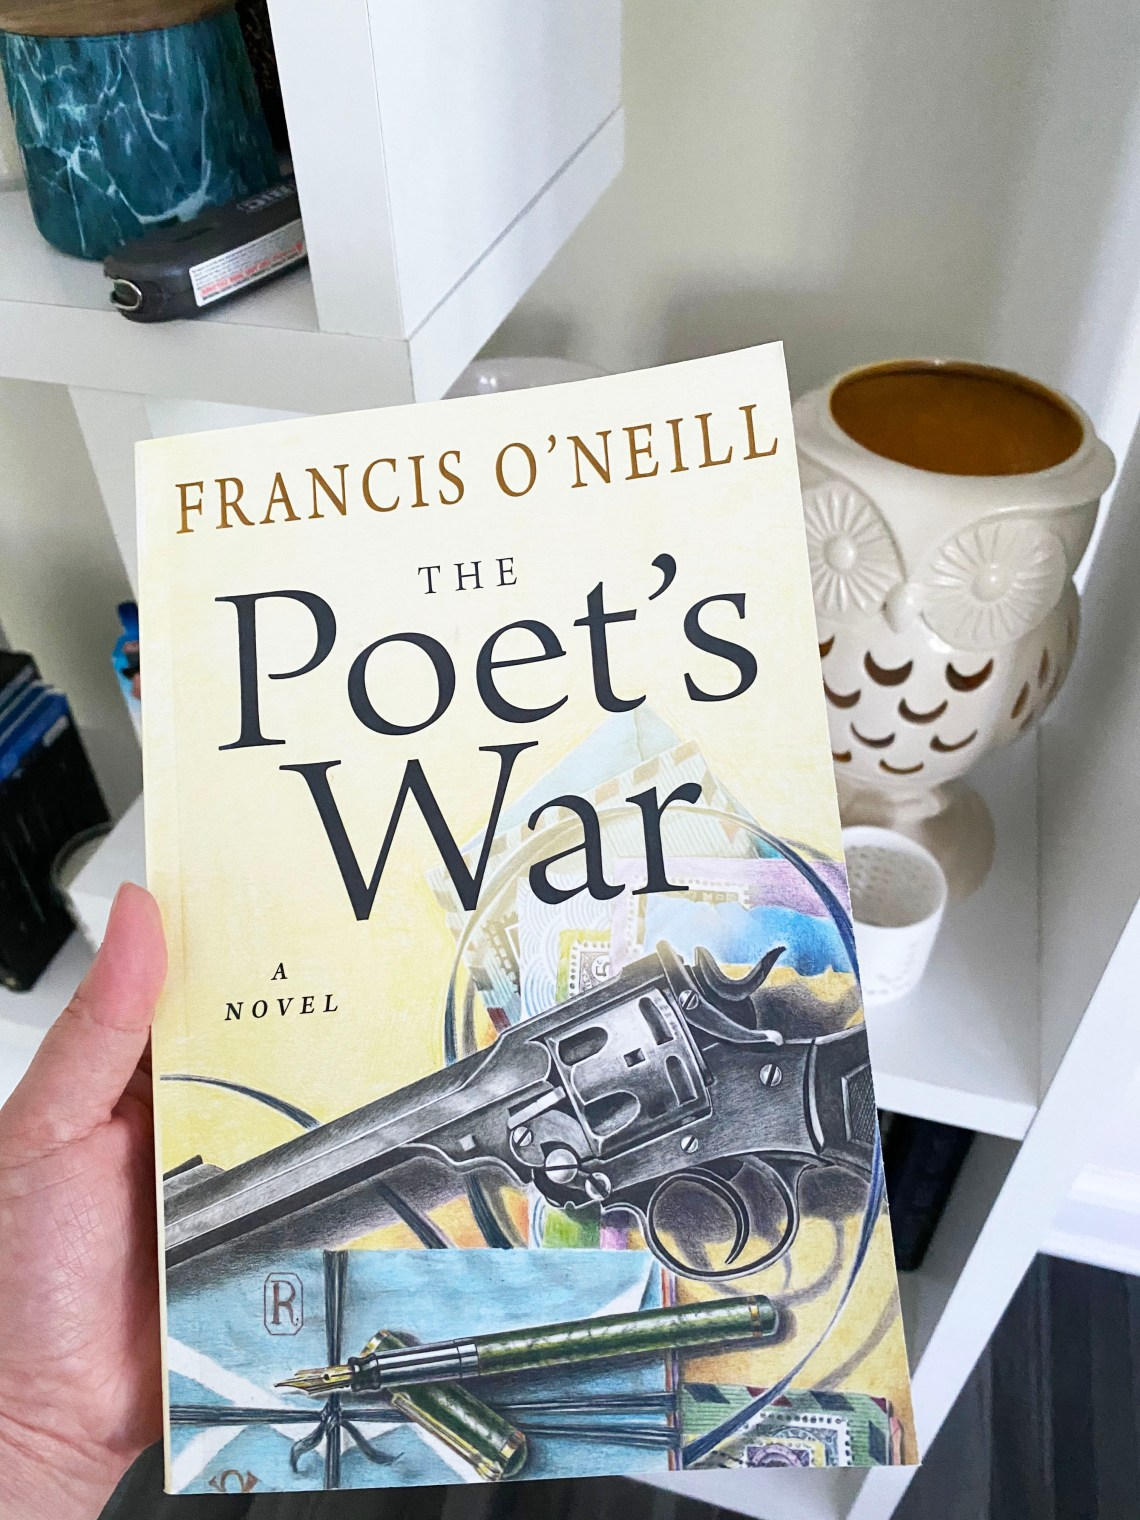 The Poet's War